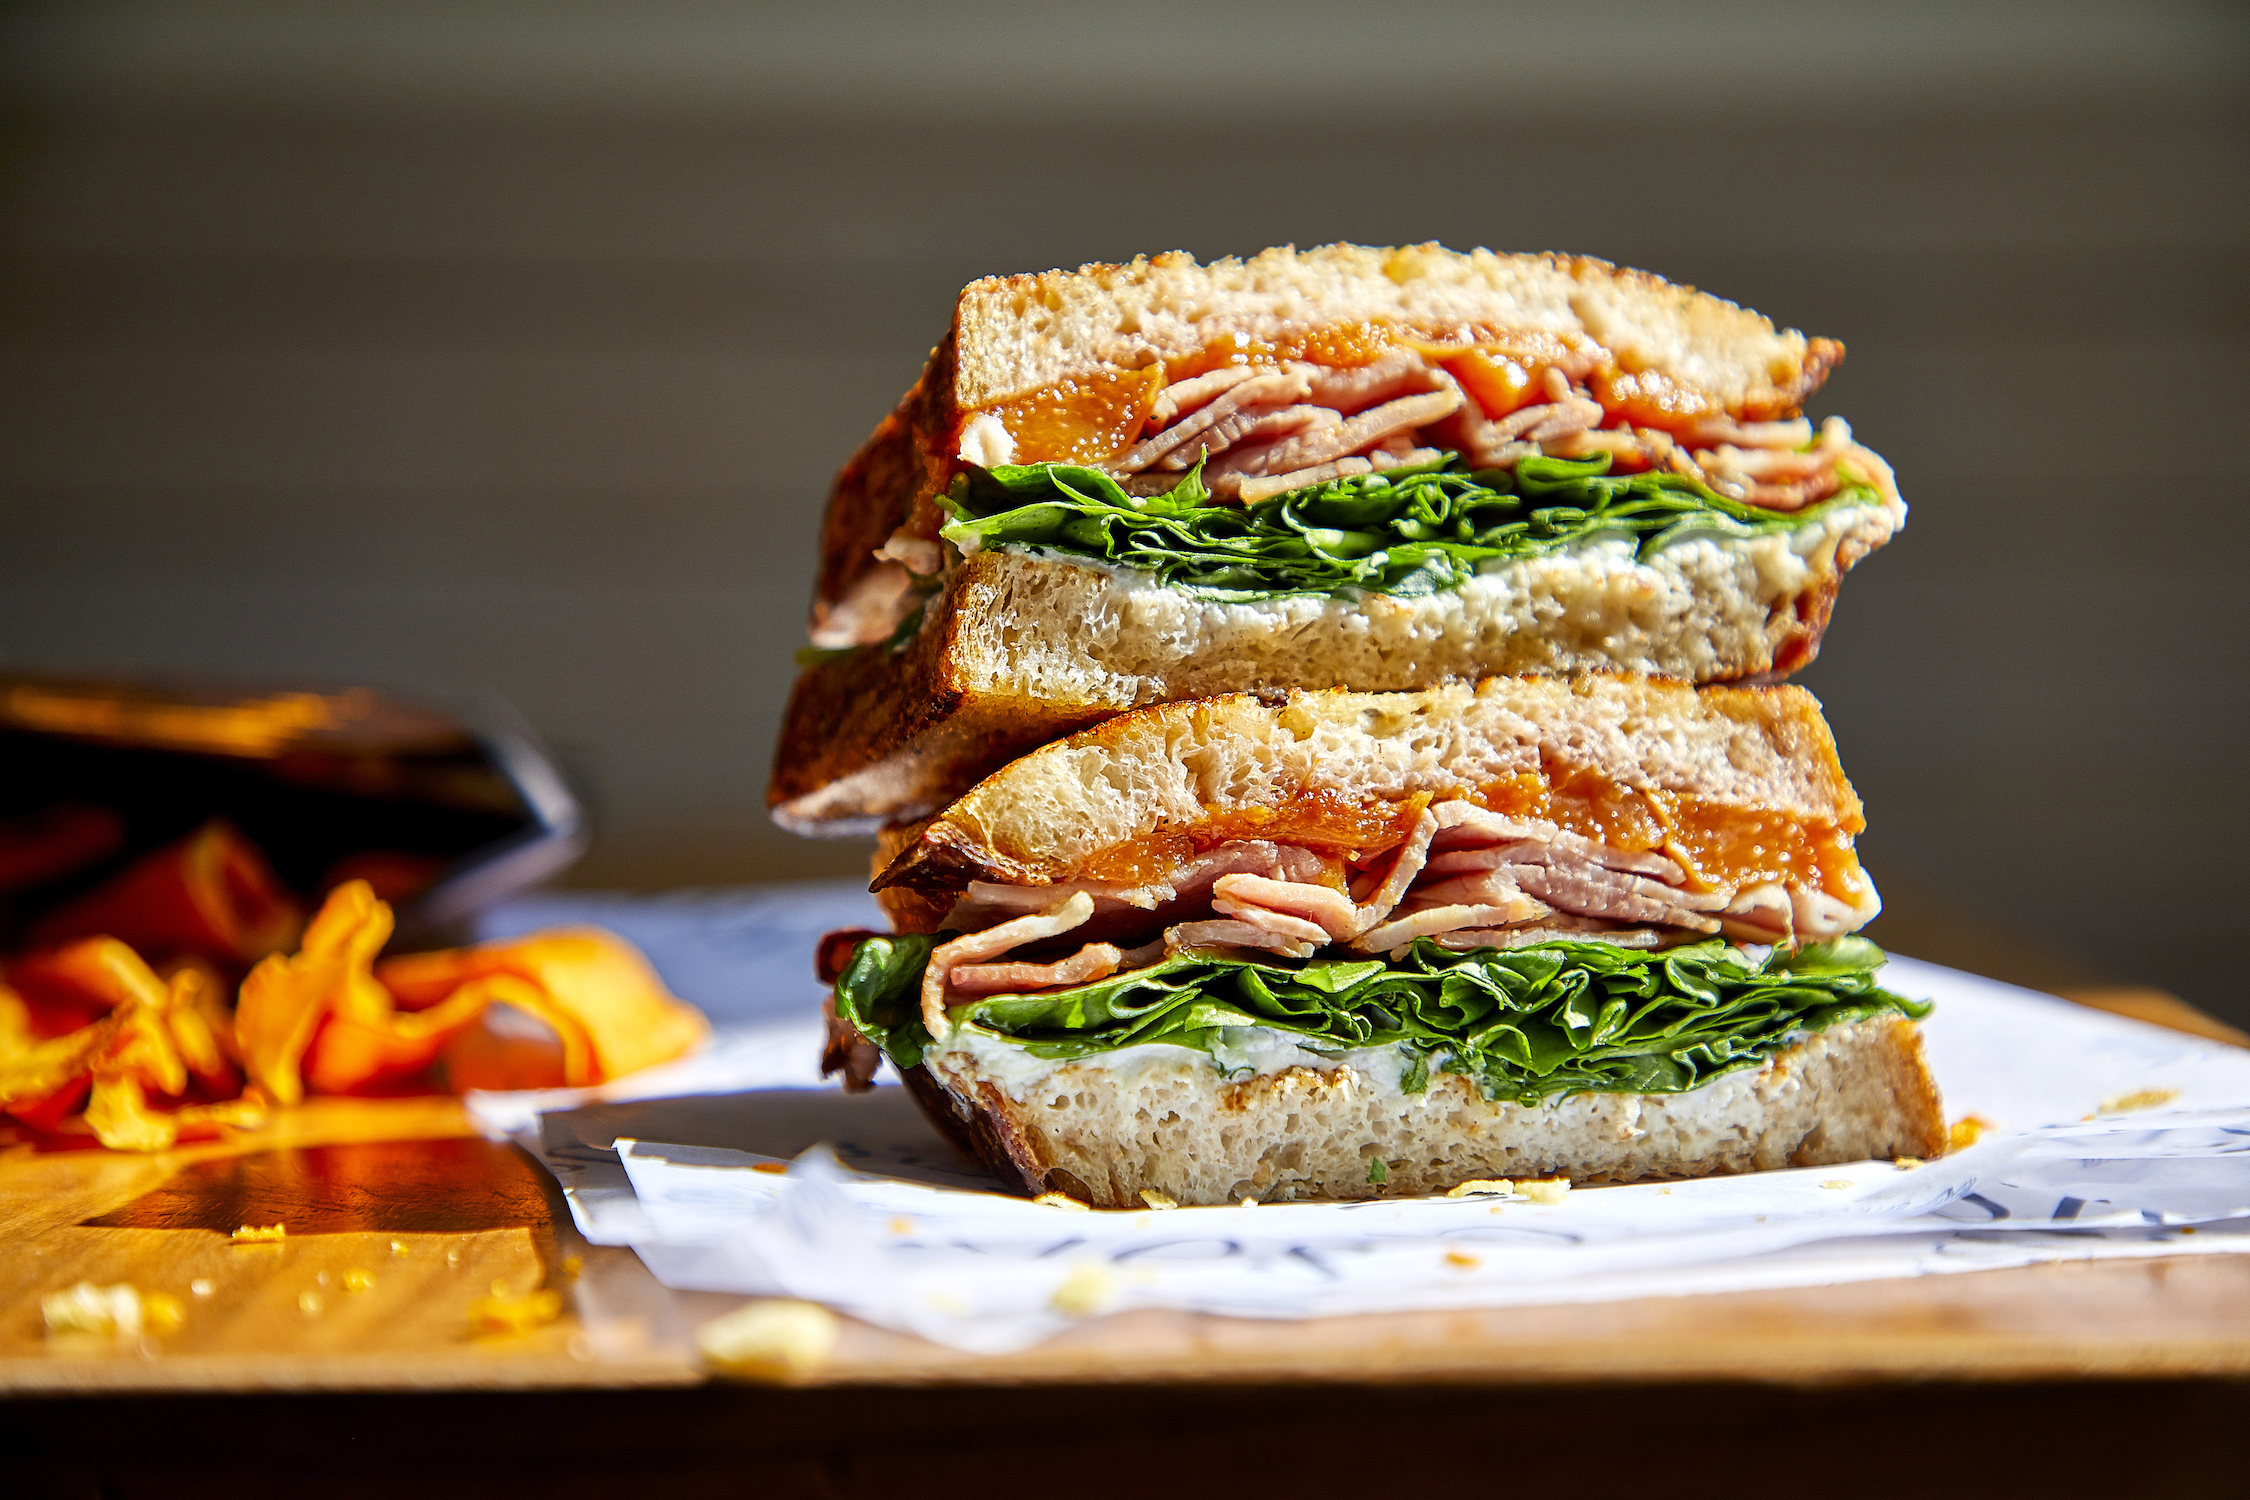 The 25 most spectacular sandwiches in the world